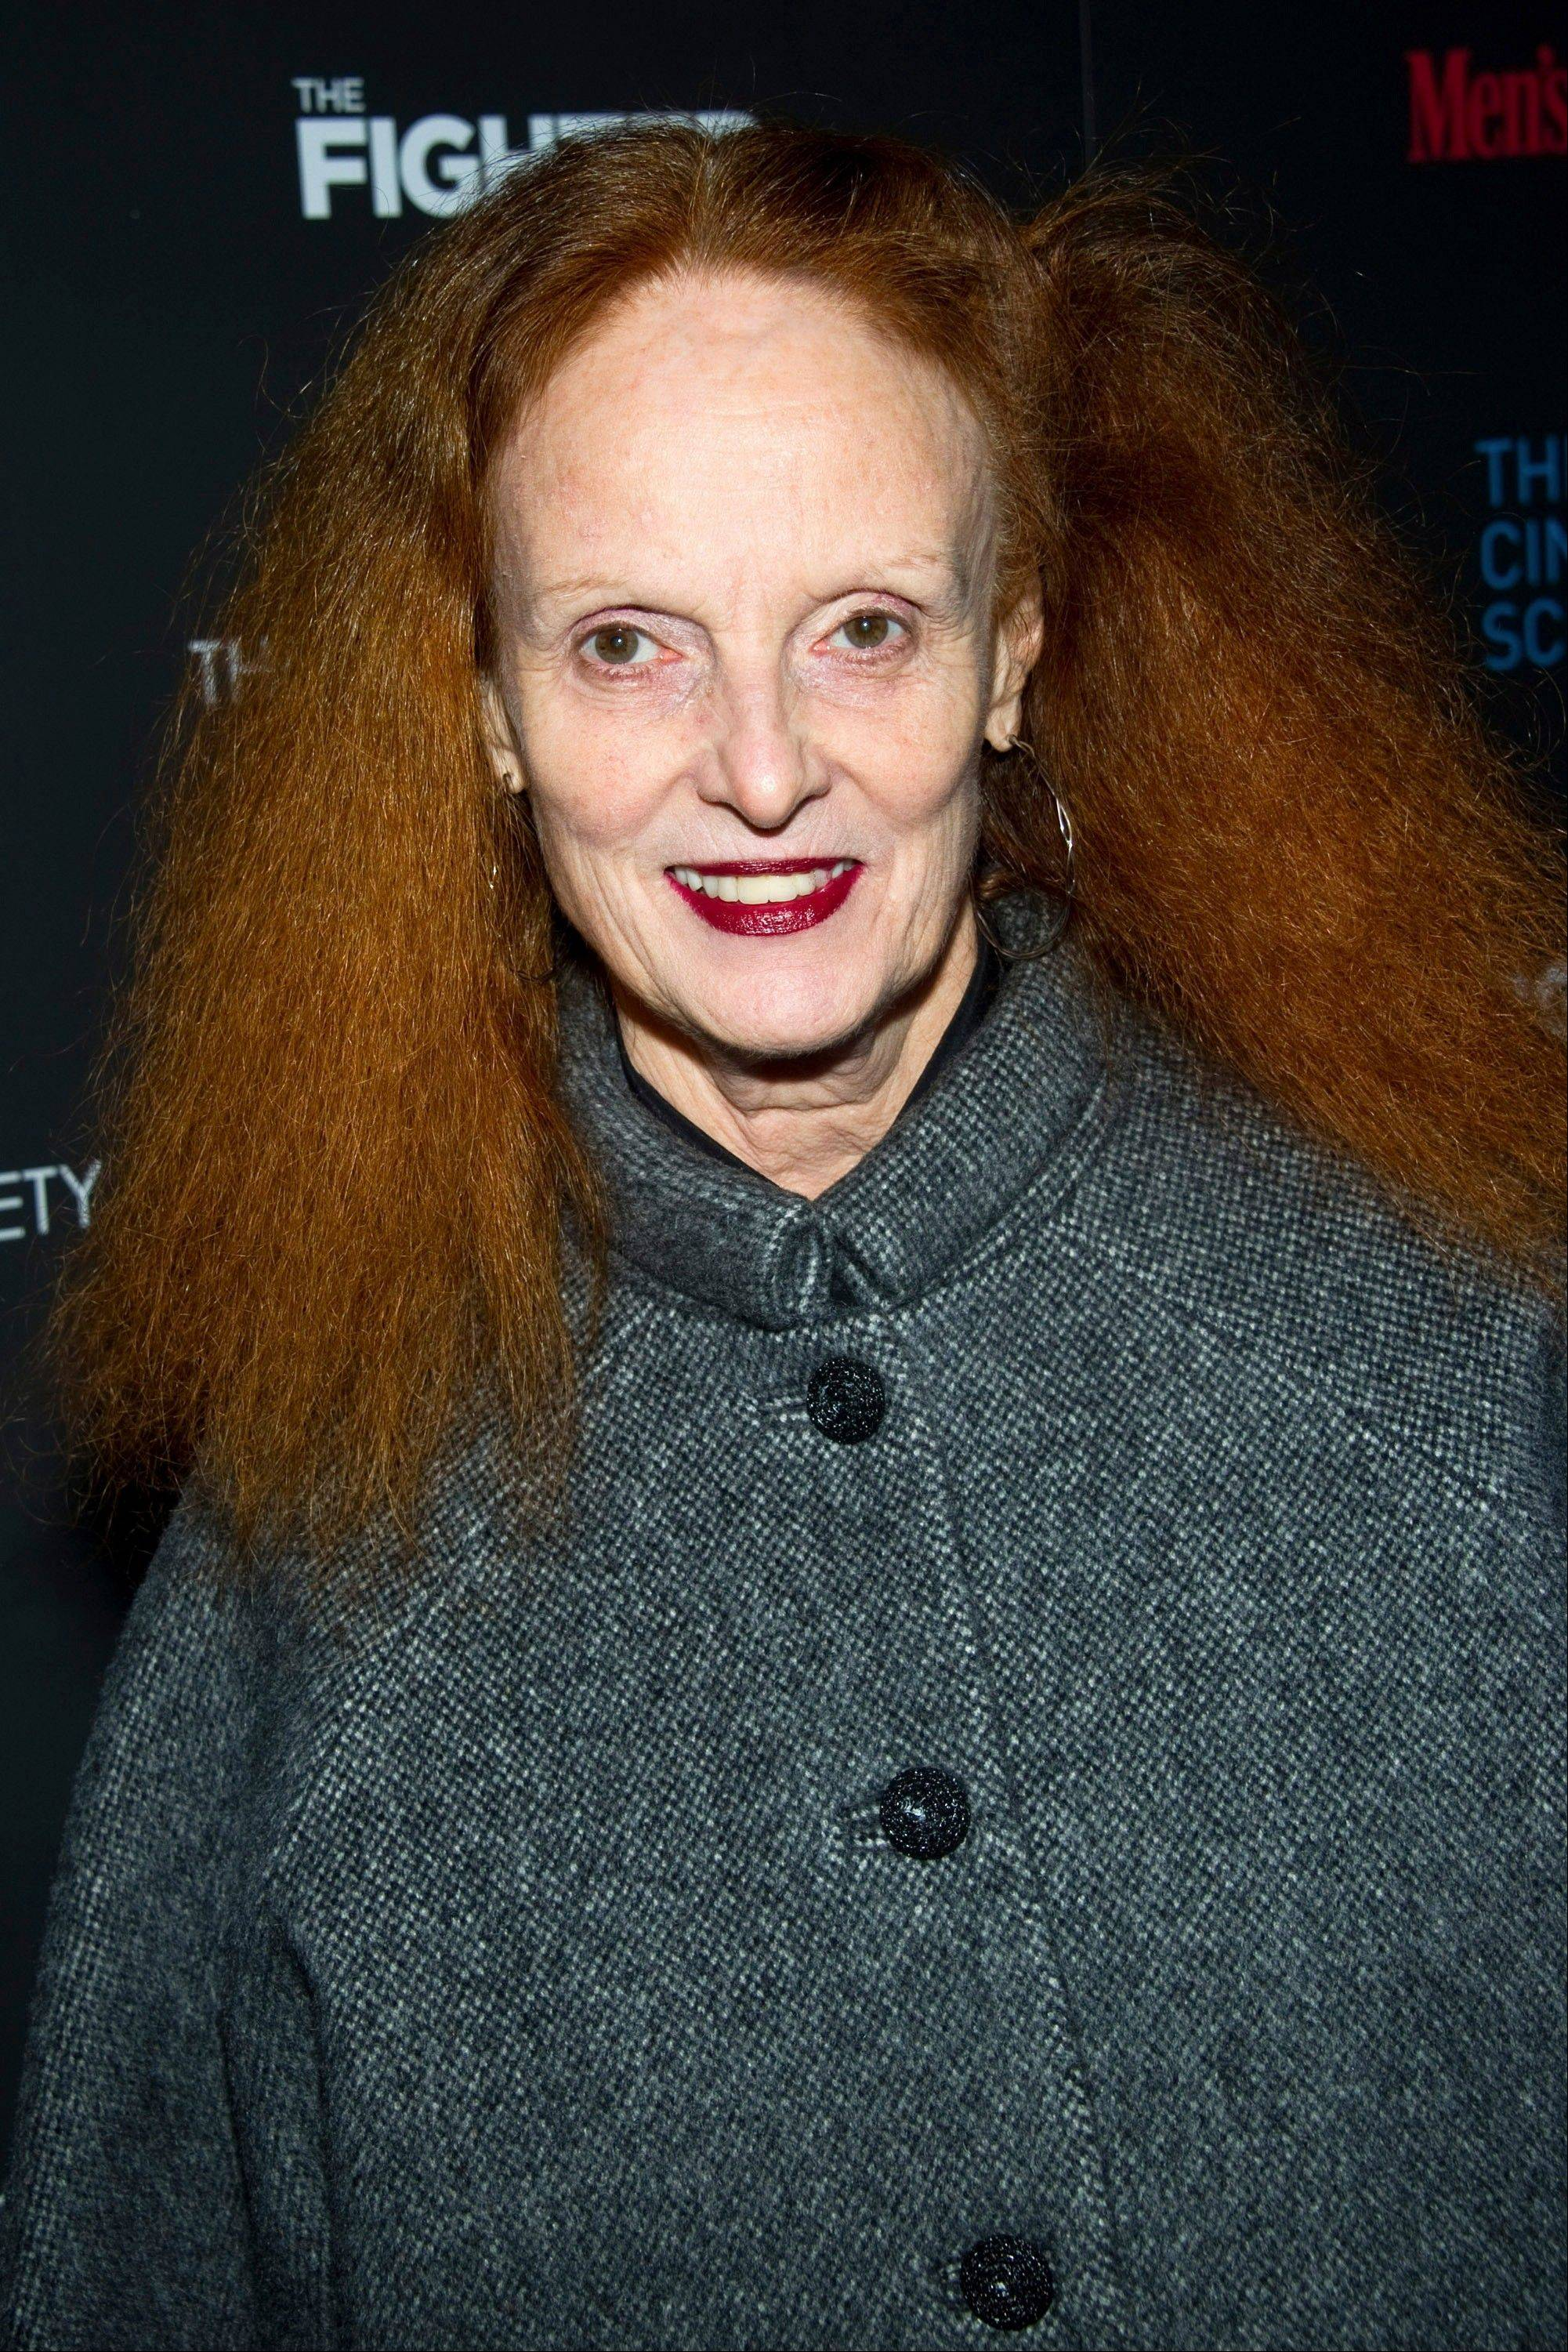 Grace Coddington, the creative director of Vogue, will tell her story from the front row of fashion in a memoir. The as-yet-untitled book with be written in collaboration with Vanity Fair style editor-at-large Michael Roberts, a longtime friend and colleague. It will include some of Coddington�s own illustrations.